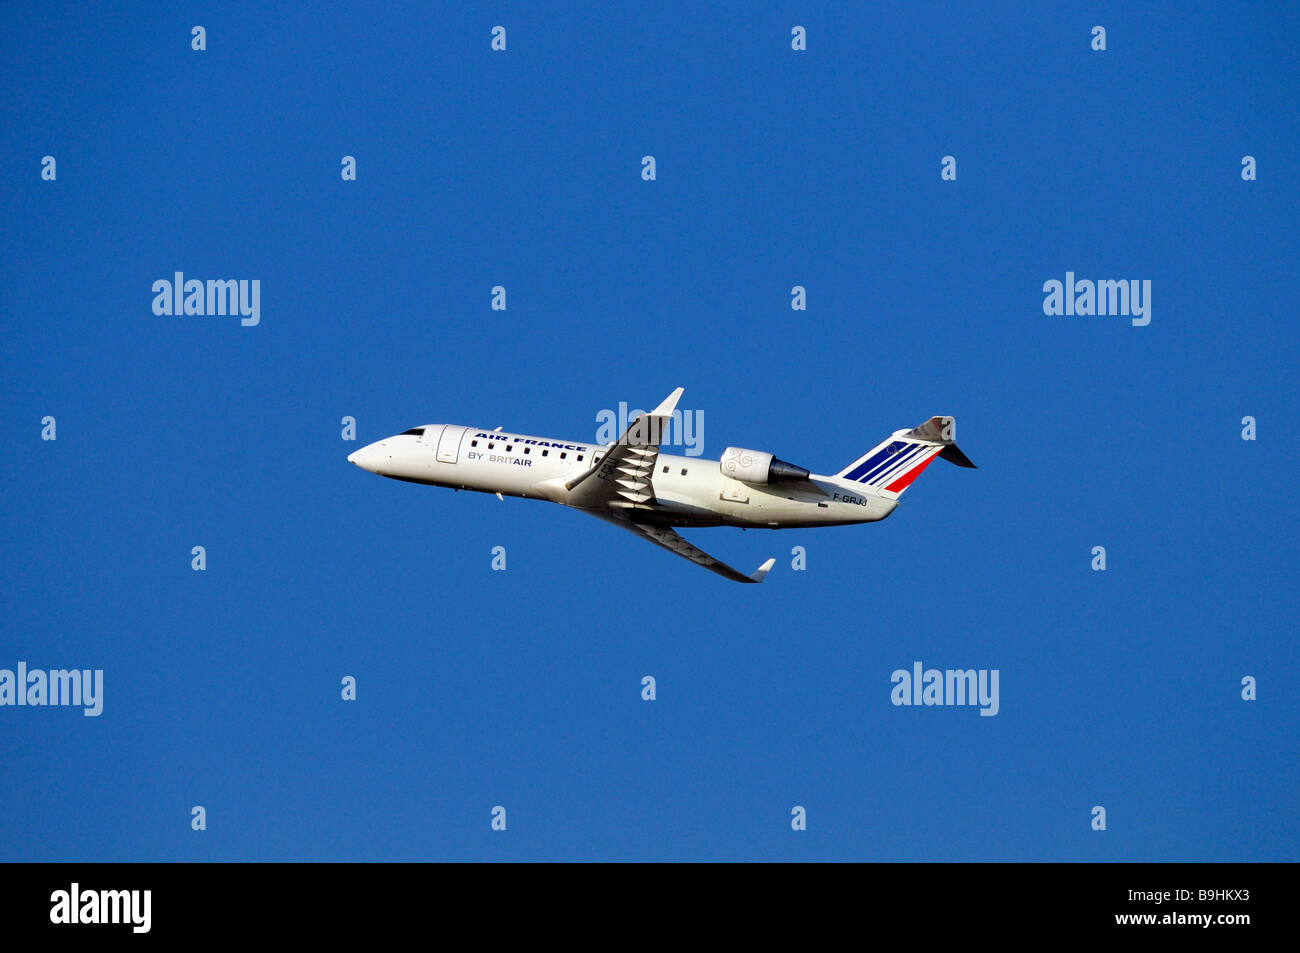 Air France commercial aircraft, Airbus, during climb flight - Stock Image